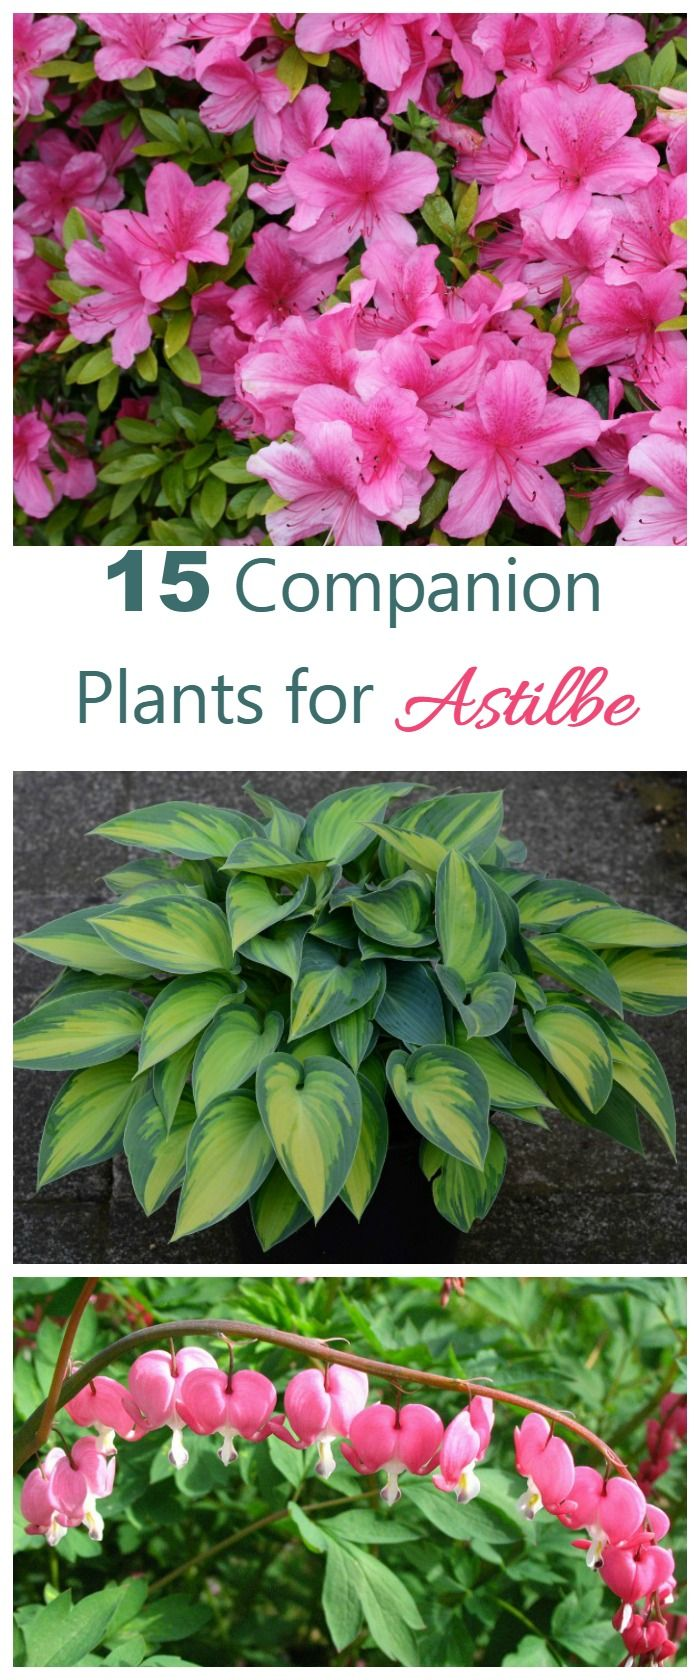 Astilbe companion plants what to grow with astilbe perennials these 15 perennials and annuals make great astilbe companion plants most love the same shade and moisture requirements and make a great looking garden bed izmirmasajfo